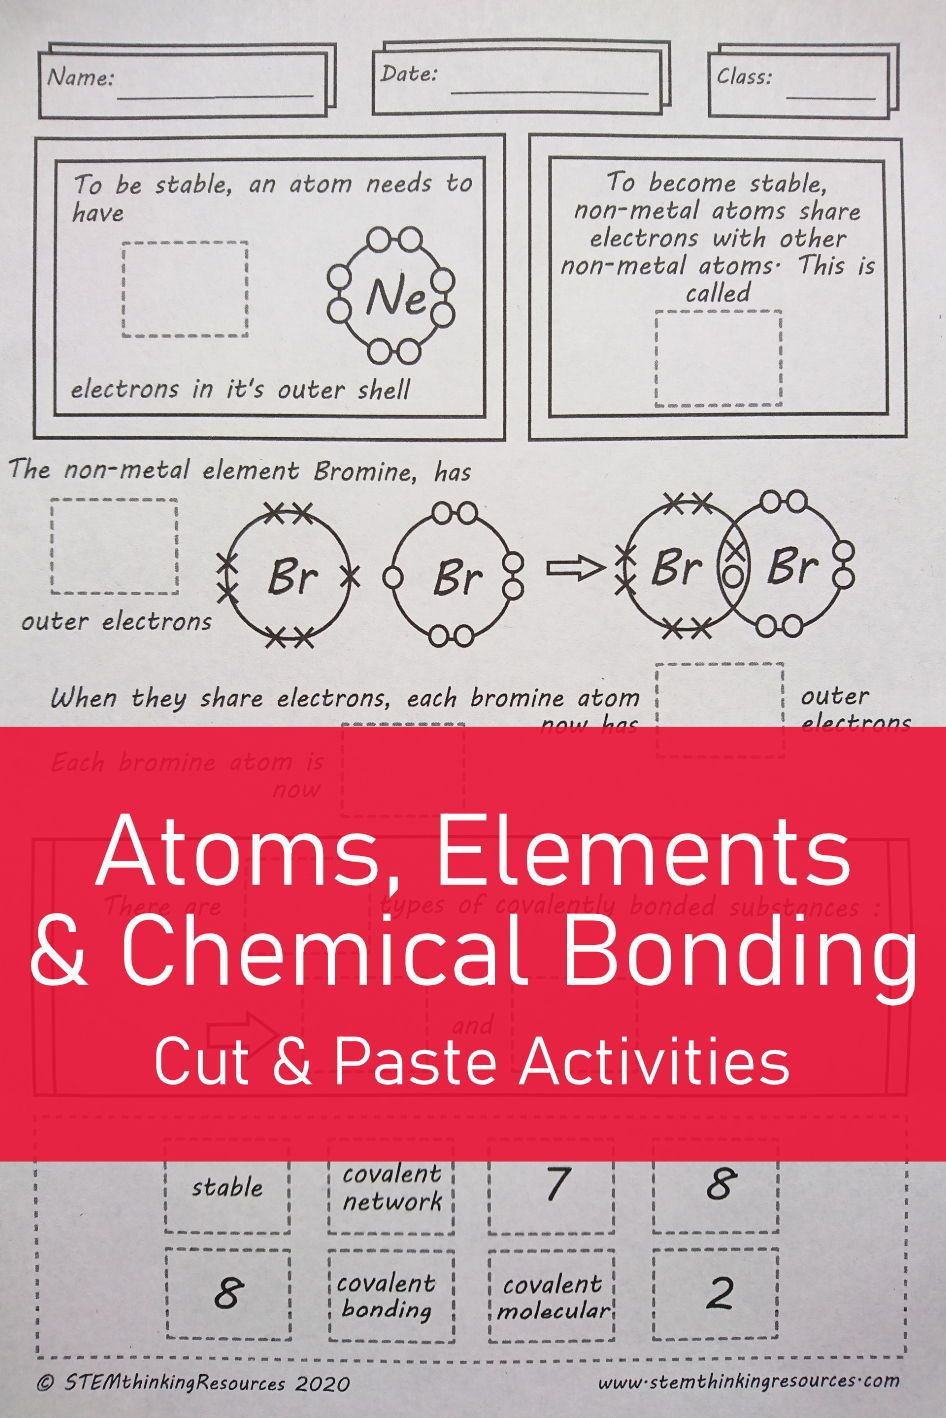 Pin On Chemistry Resources For Science Teachers